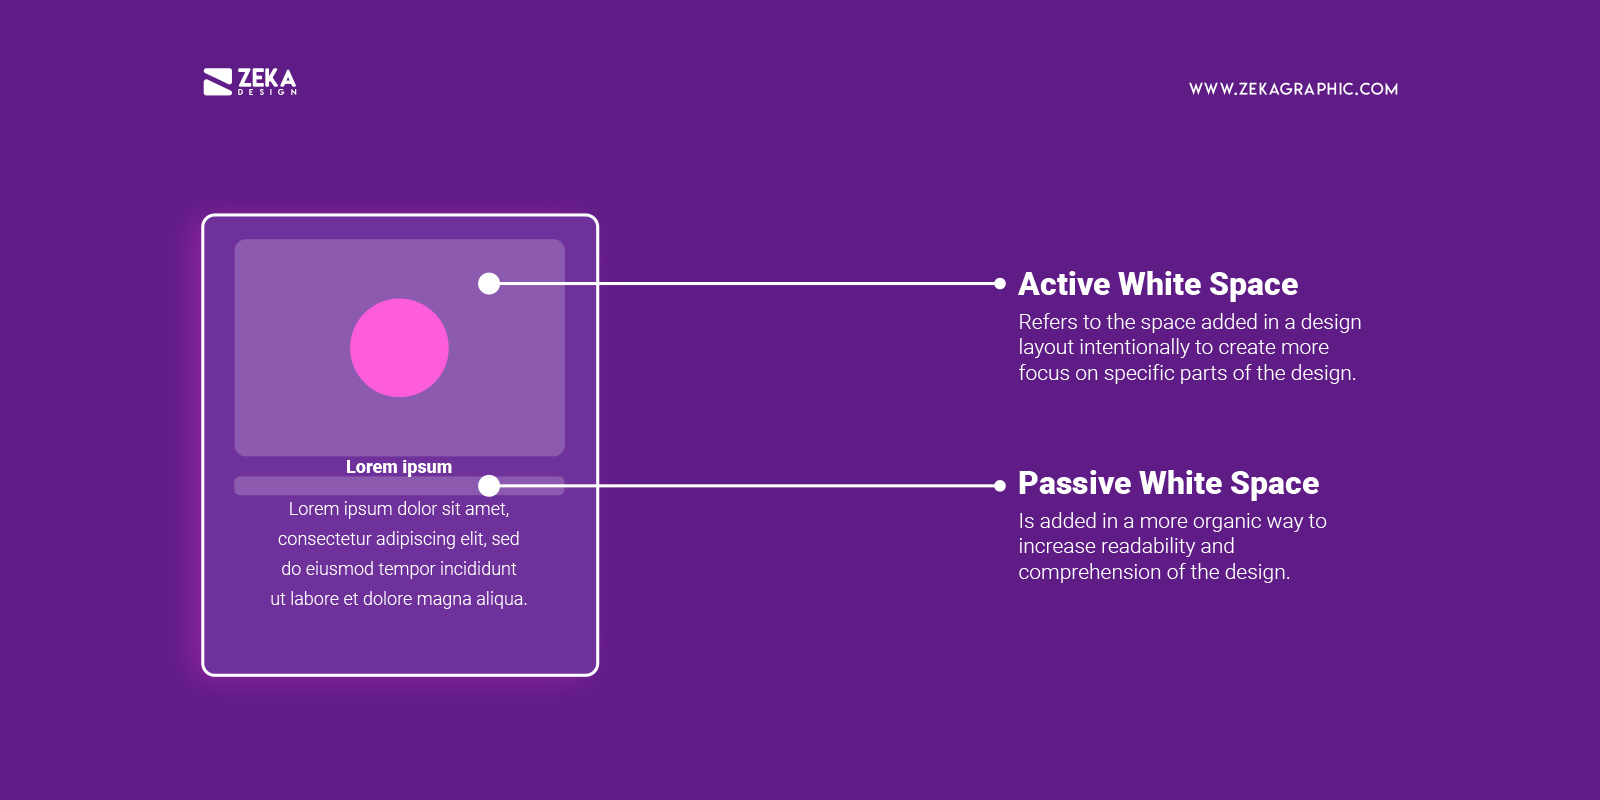 Passive and Active White Space in Graphic Design